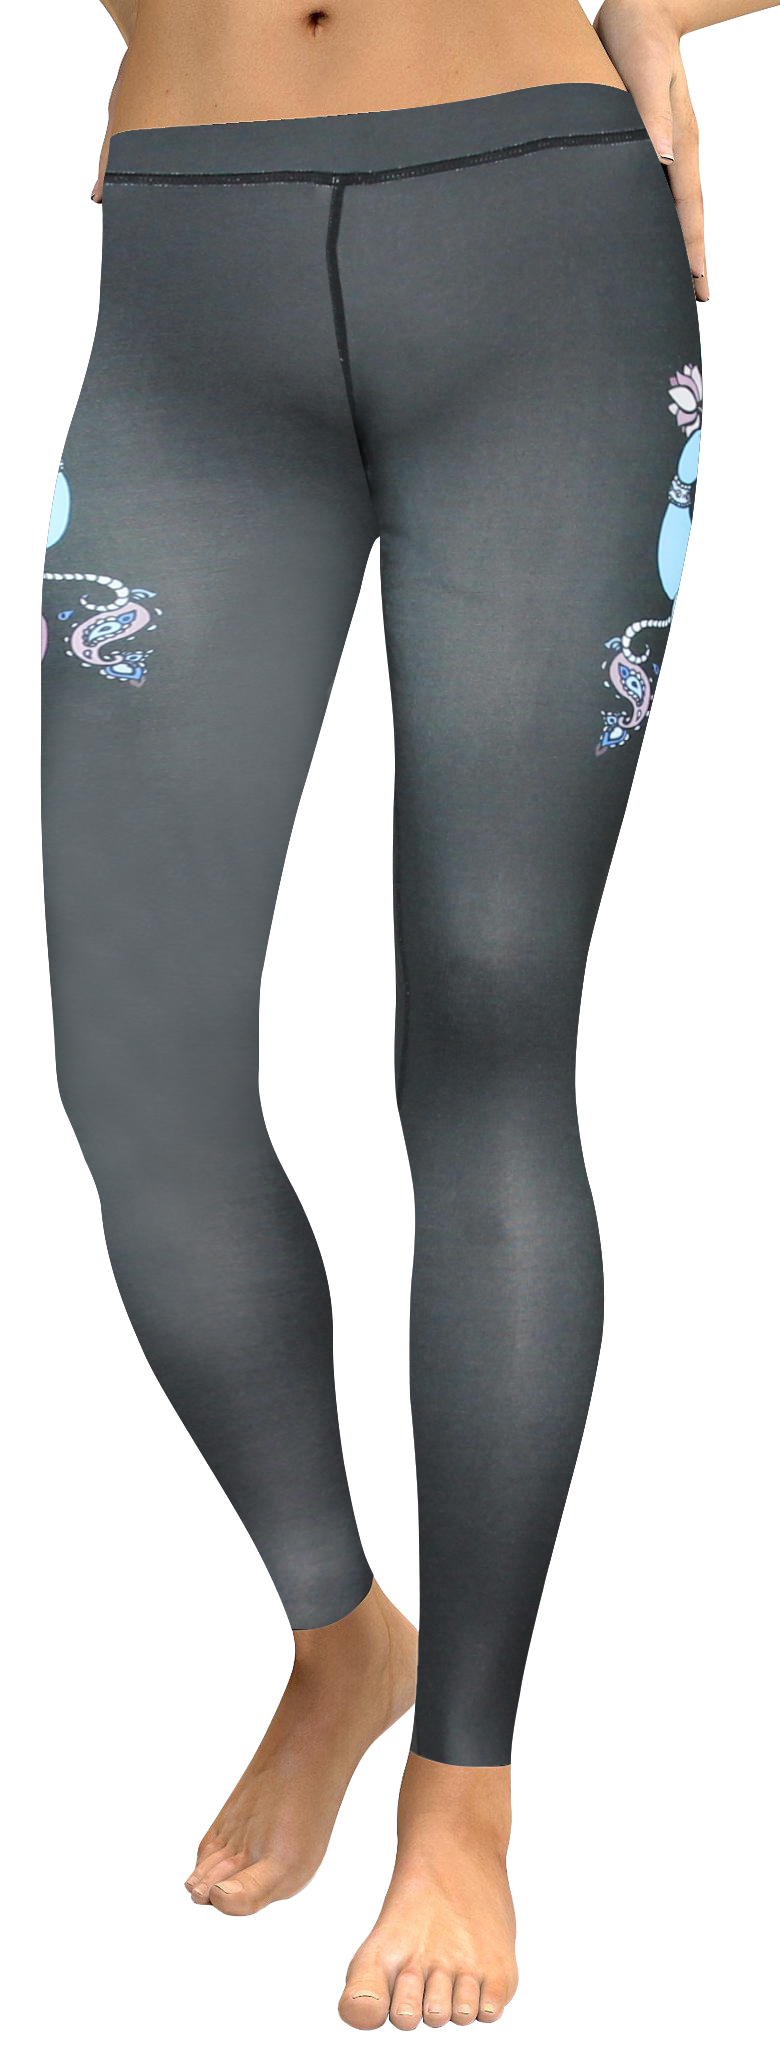 High waistband black ganesha legging (1)